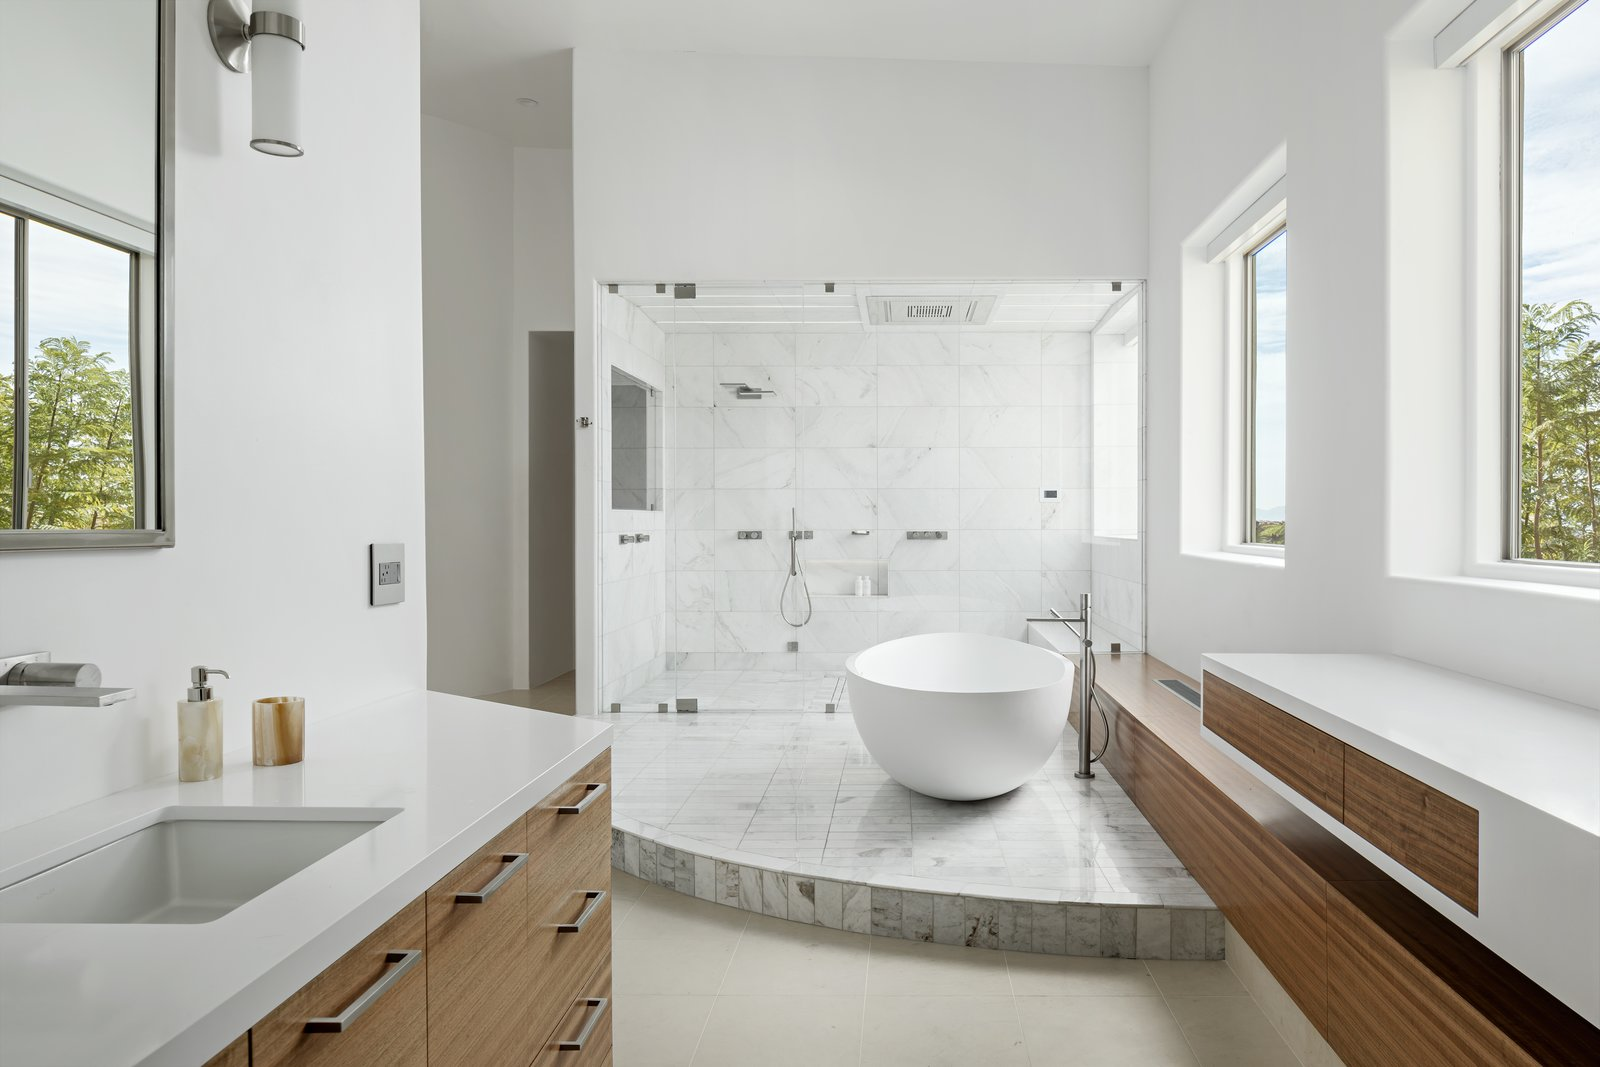 Bath, Undermount, Engineered Quartz, Freestanding, Enclosed, Marble, Marble, Wall, and Full Both vanities with freestanding tub and steam shower in the background  Best Bath Marble Wall Photos from Cliff House